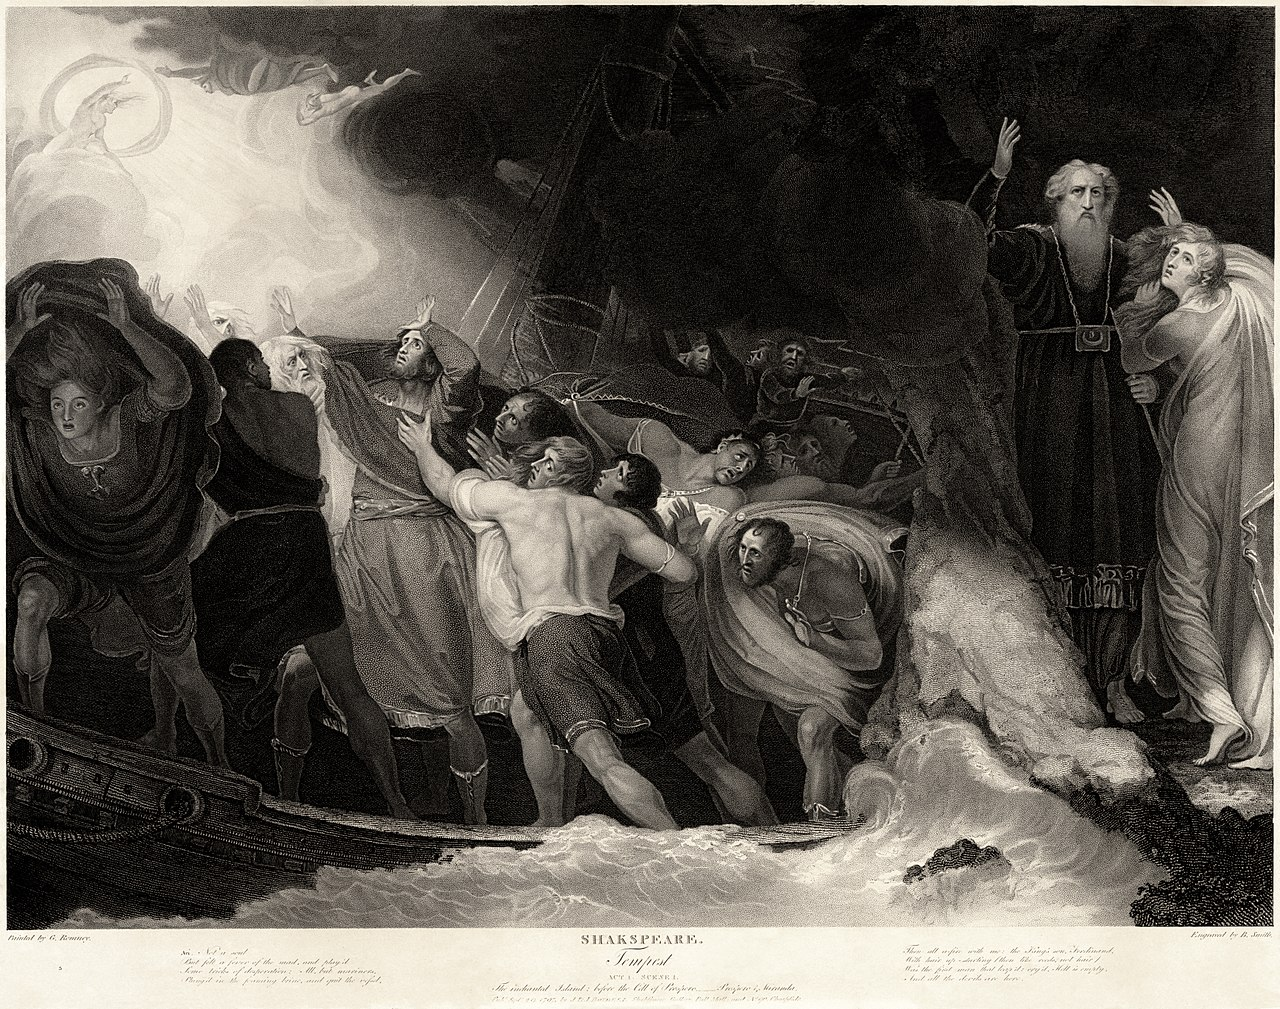 Act I, Scene 1 of  The Tempest  by William Shakespeare | Benjamin Smith, after George Romney | 1797 | engraving